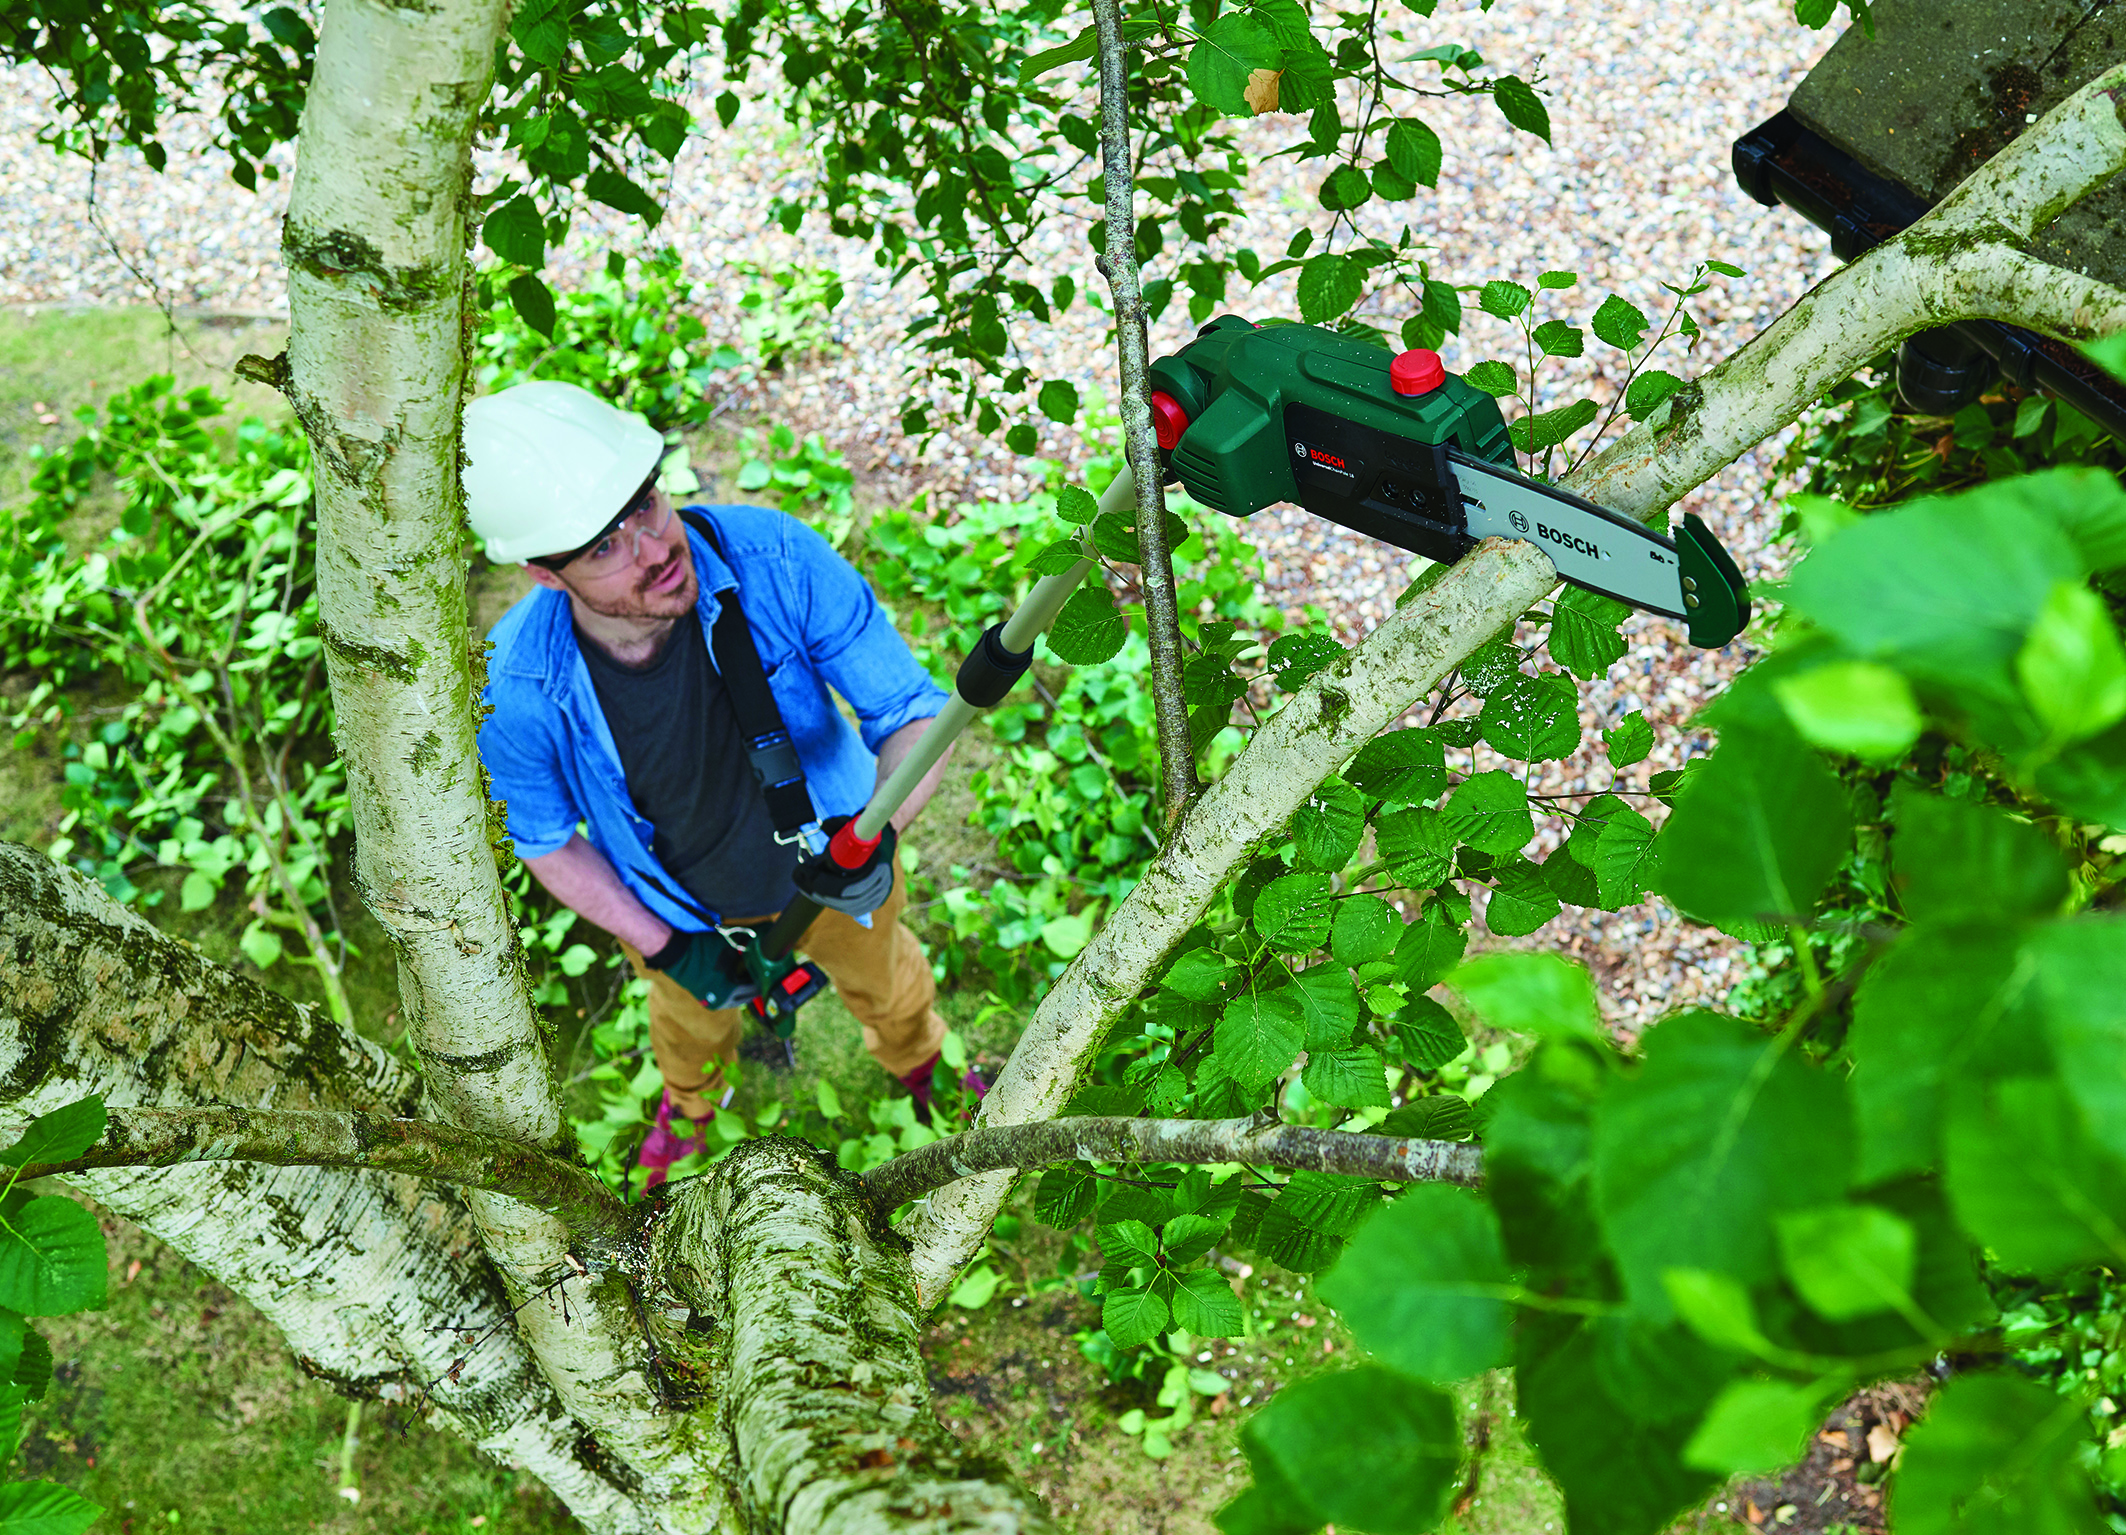 For hard-to-reach branches of up to 150 millimeters in diameter: UniversalChainPole 18 pruner from Bosch